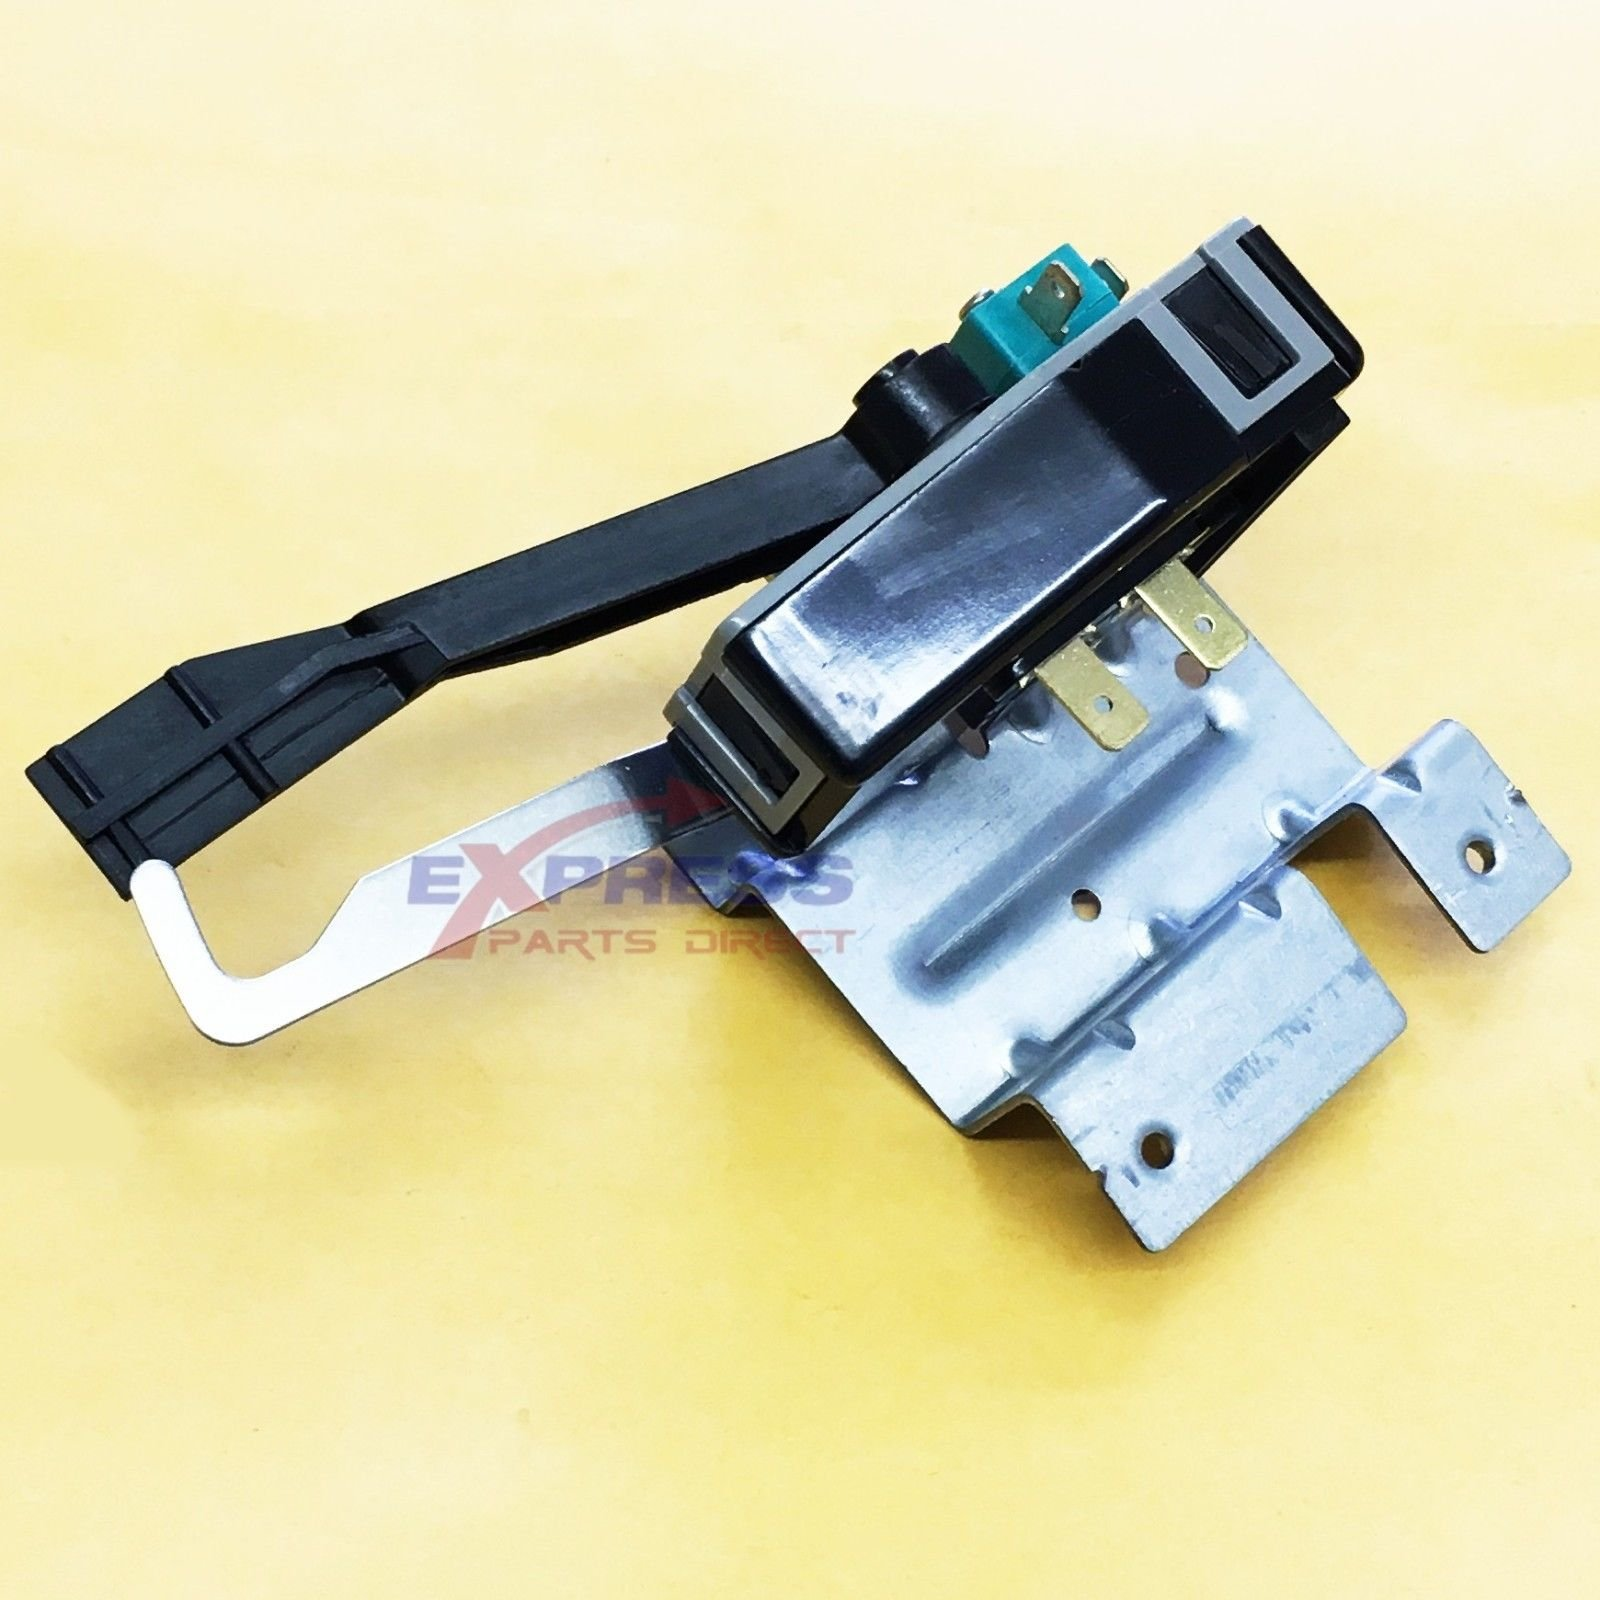 EXP134101800 Door Lock Switch (Replaces 134101800,PS648775, AP2108159) for Frigidaire, Gibson, Kelvinator, Kenmore, Tappan & White-Westinghouse